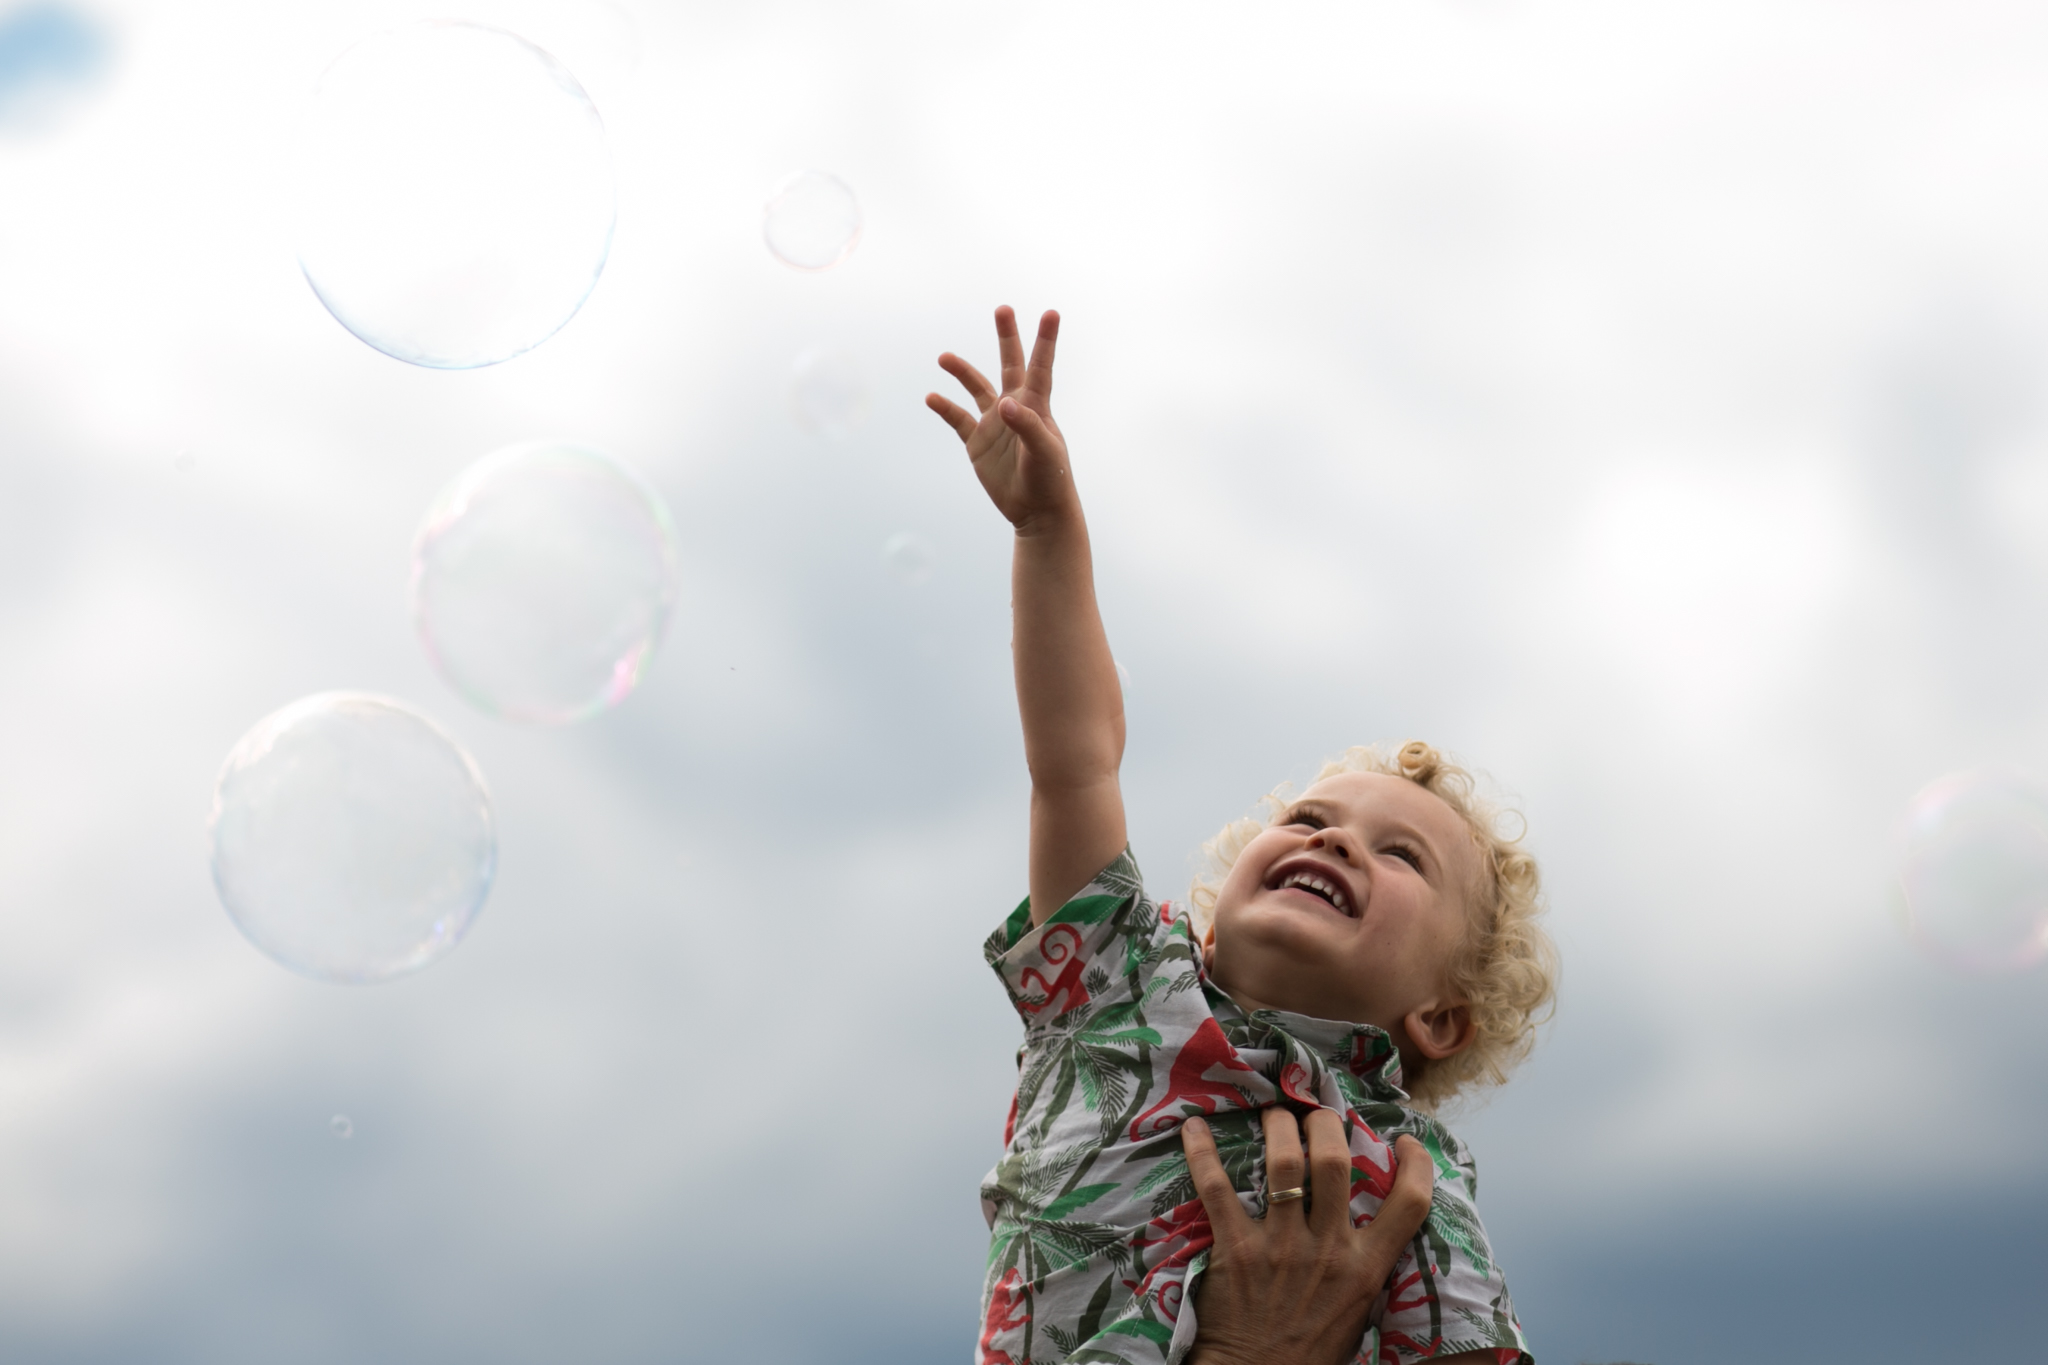 Catching bubbles on Southbank